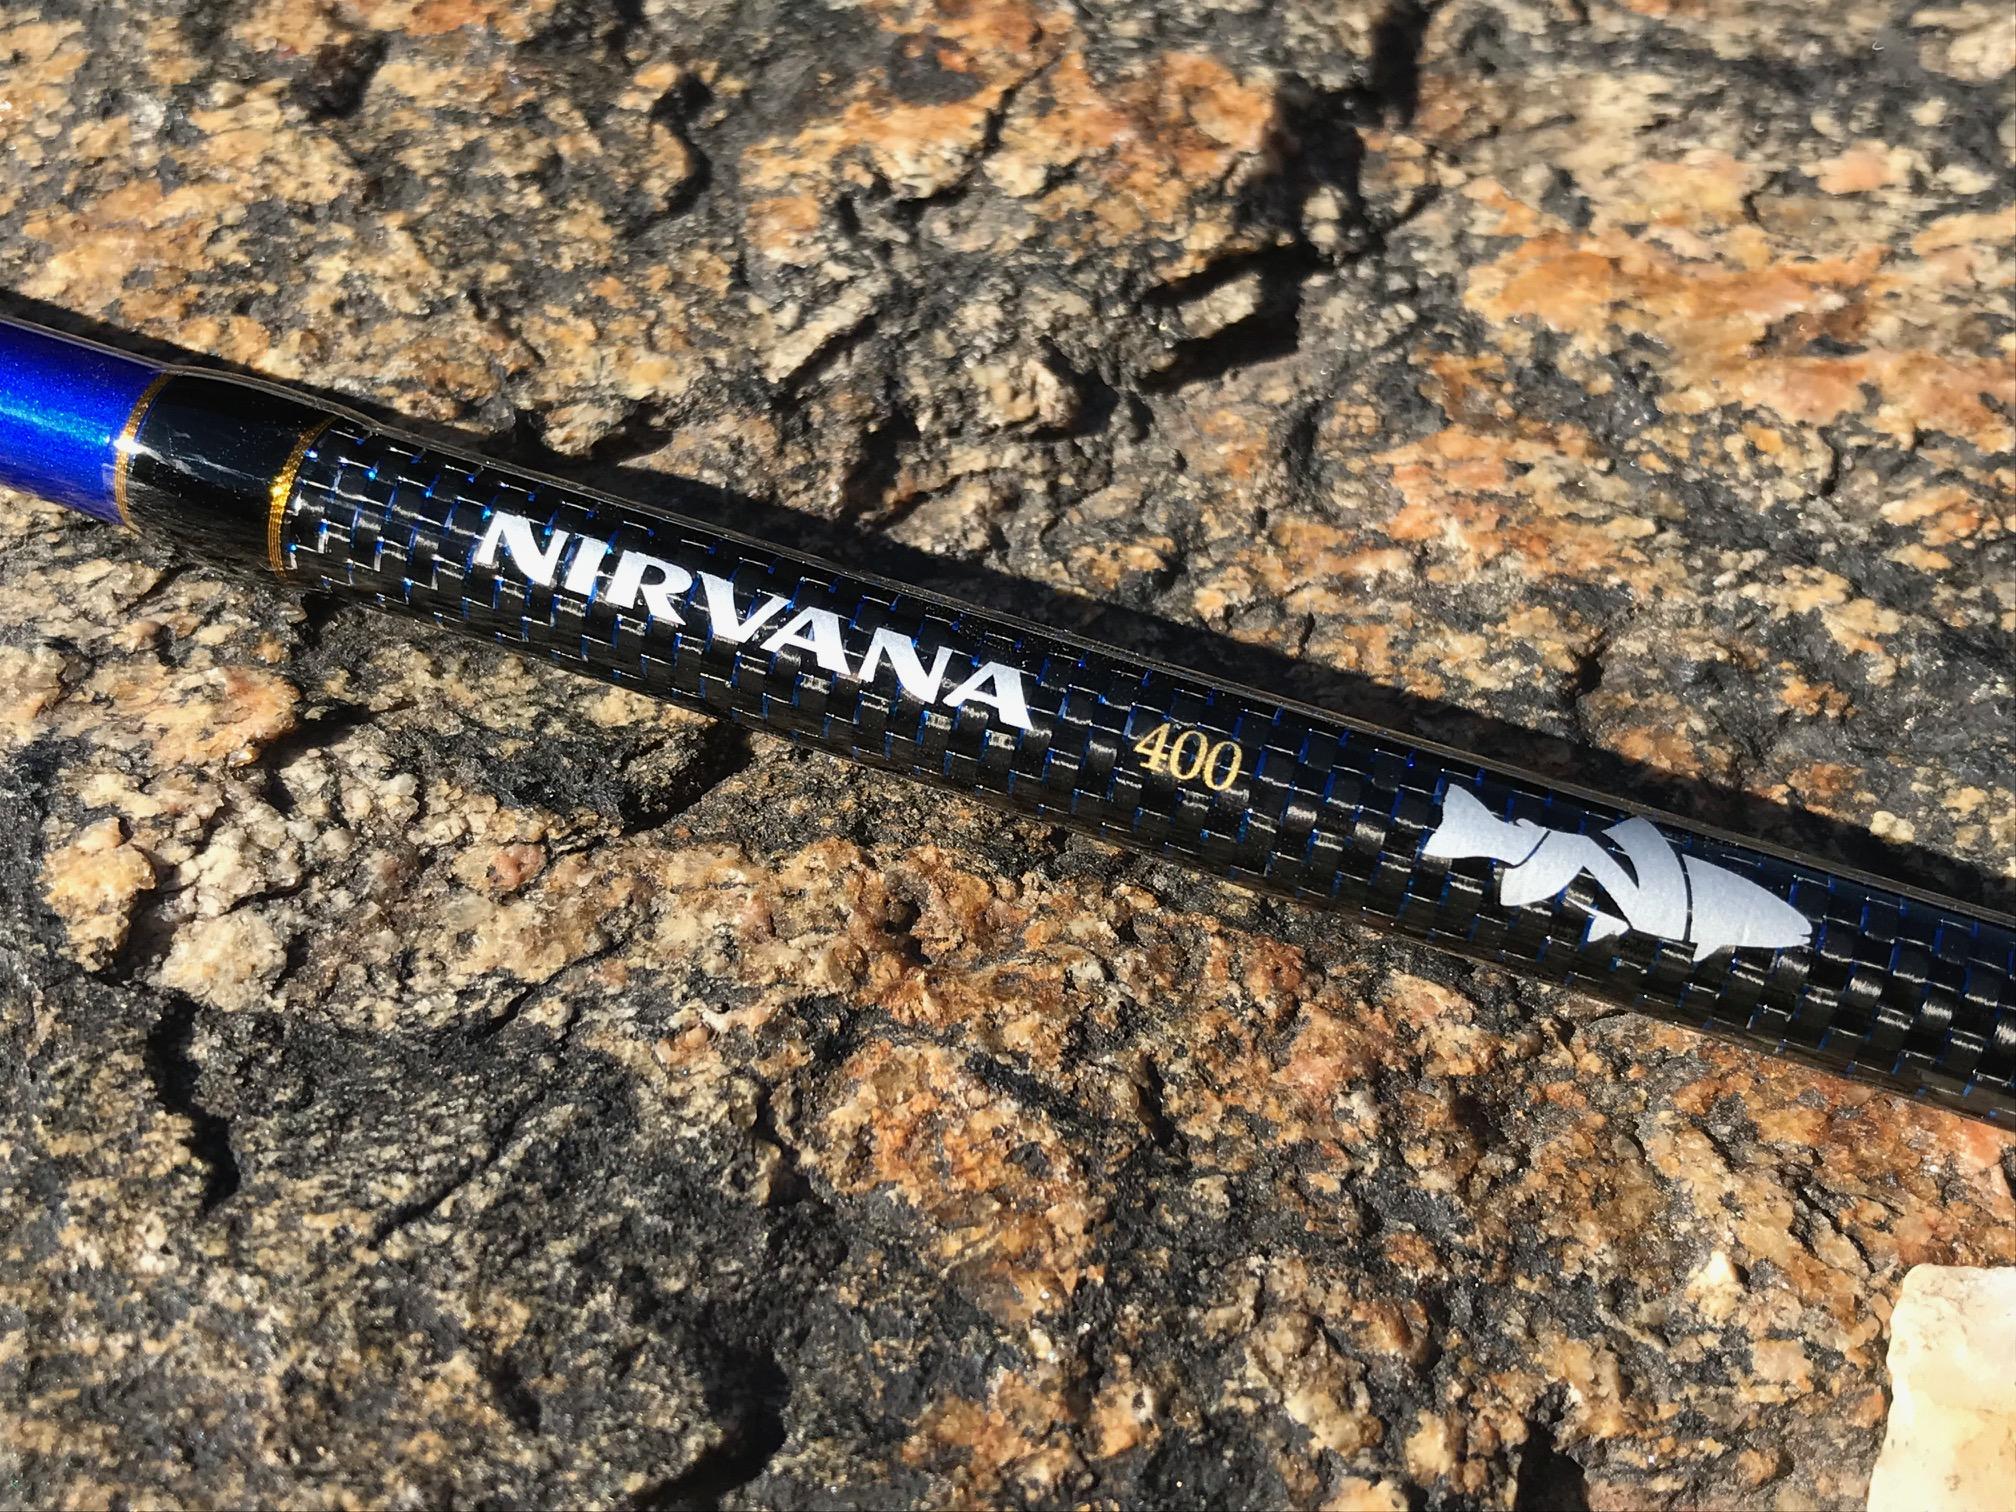 Dragontail Nirvana 400 Tenkara Rod